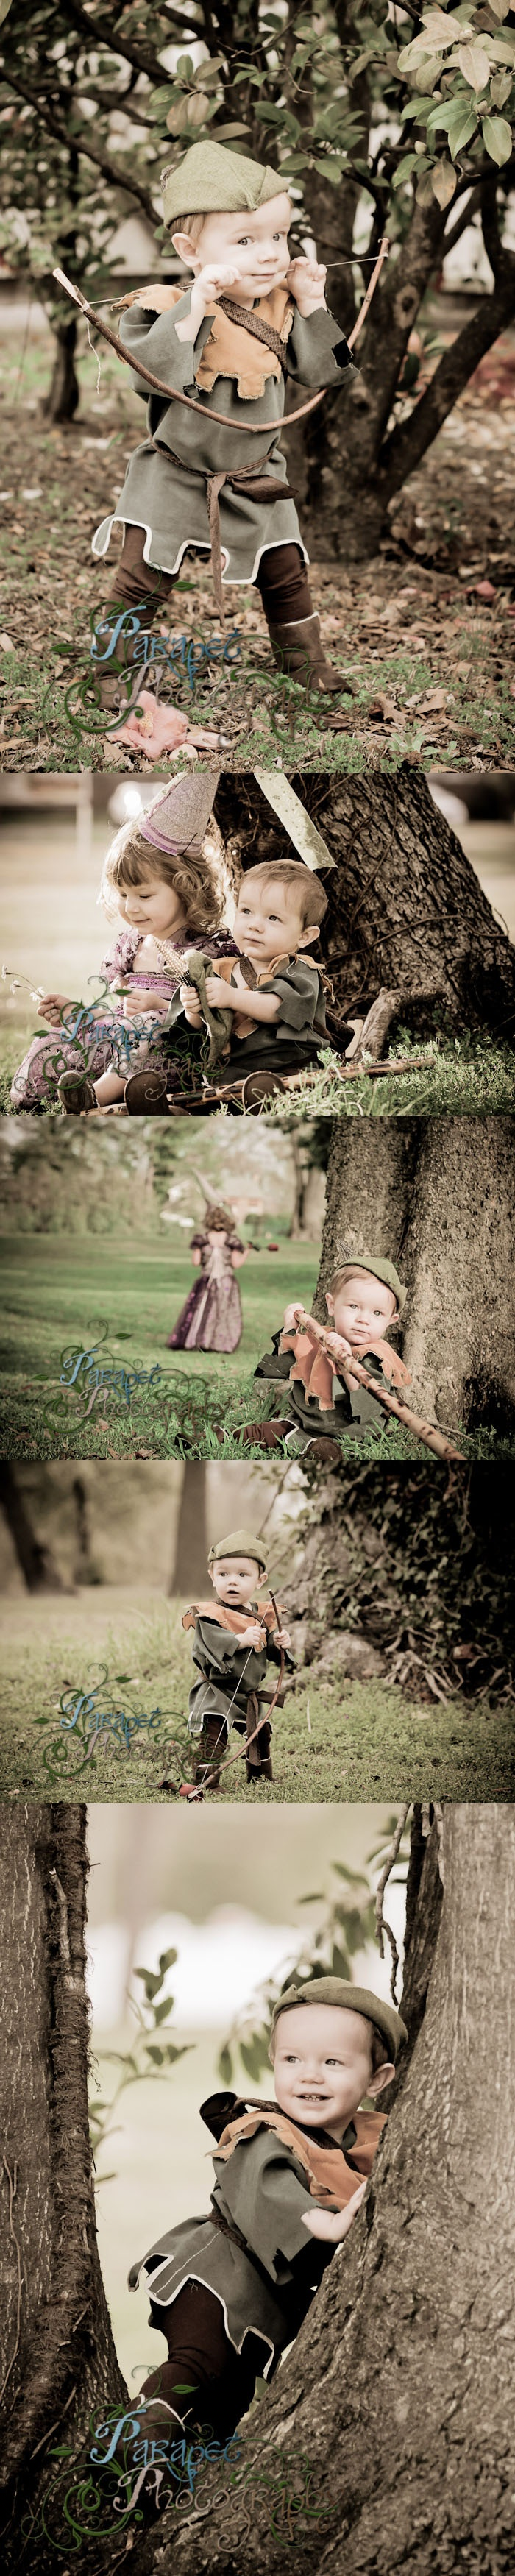 A basic DIY guide on how to do a Robin Hood themed children's cosplay, LARP, or photoshoot with costume, prop and location ideas from findingstorybookland.com